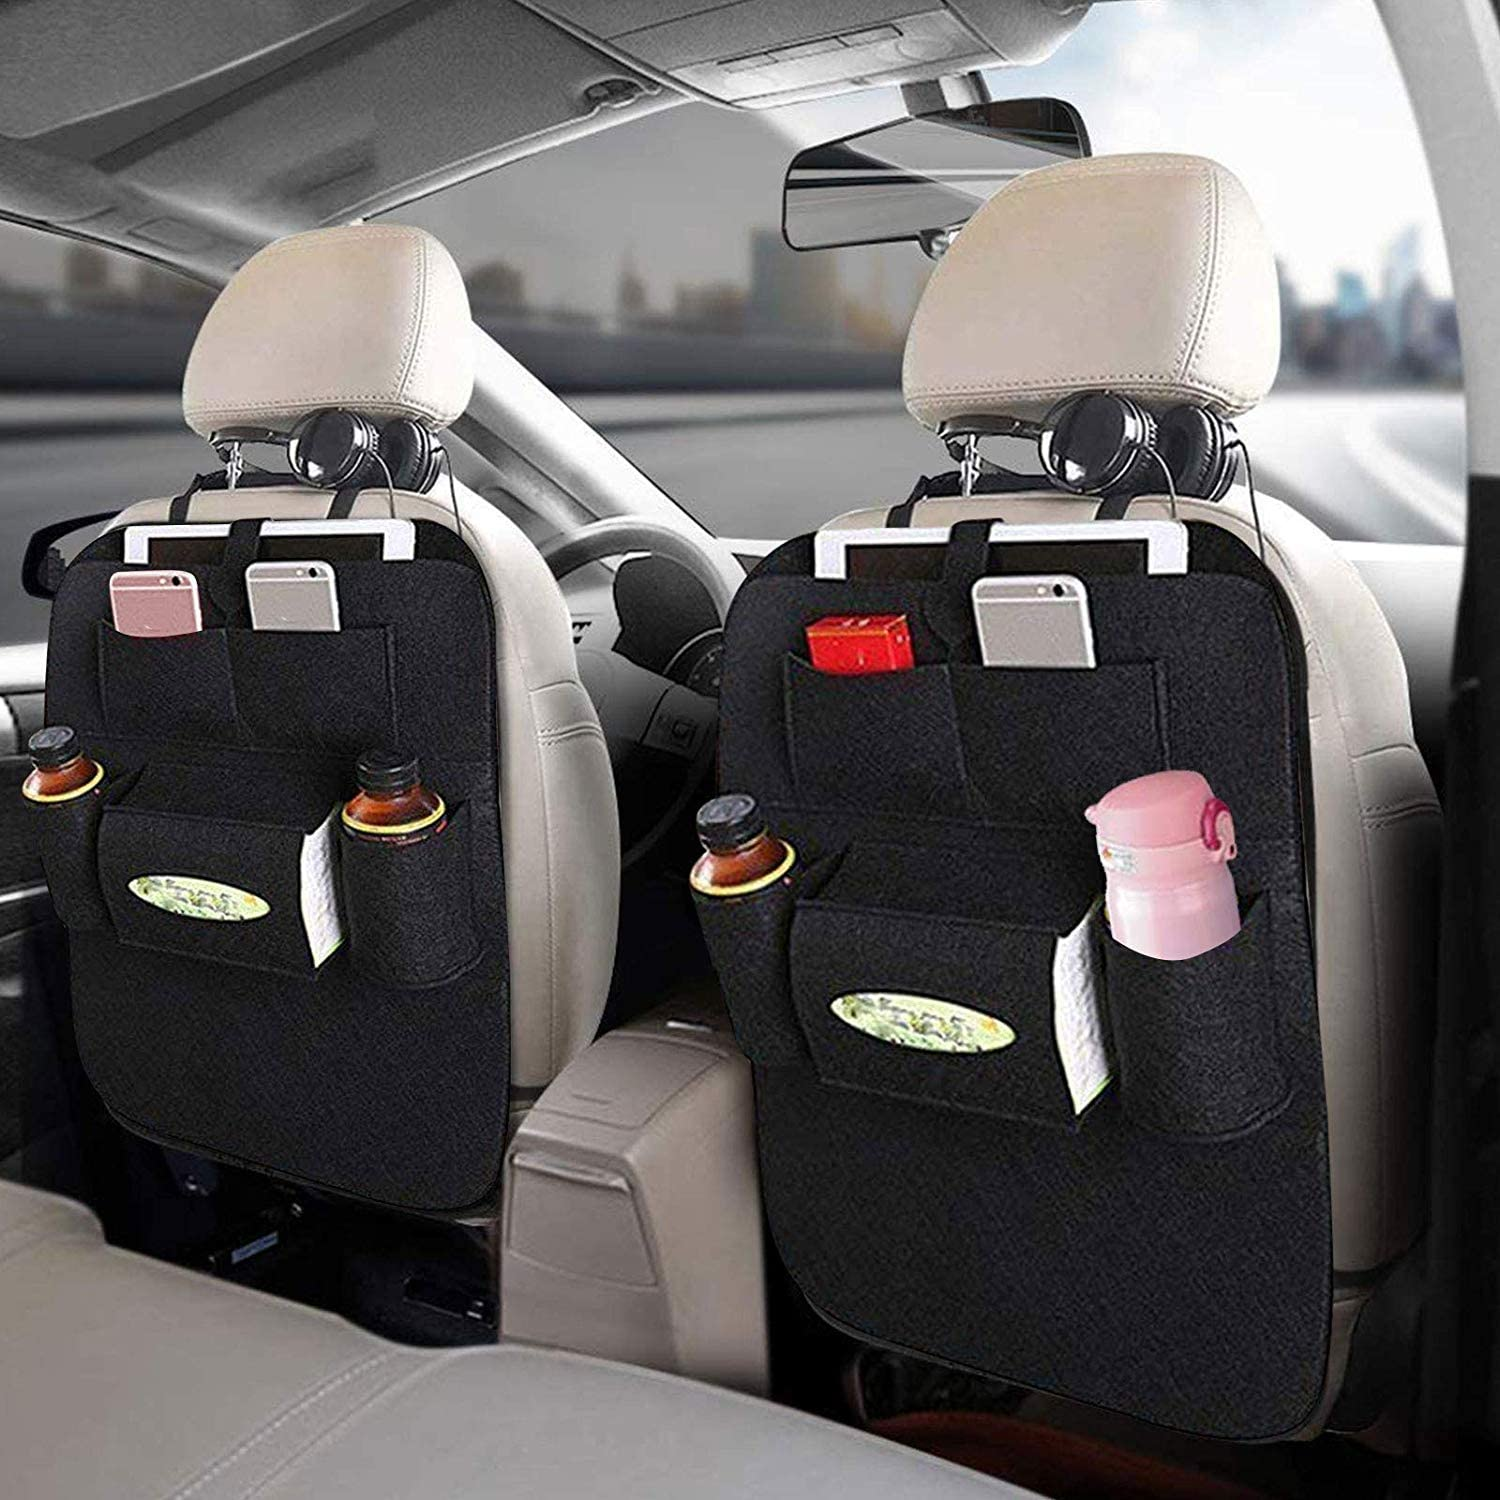 Backseat Car Organizer Car Back Seat Organizer Travel Storage Bag For Baby Kids Black Amazon Co Uk Baby